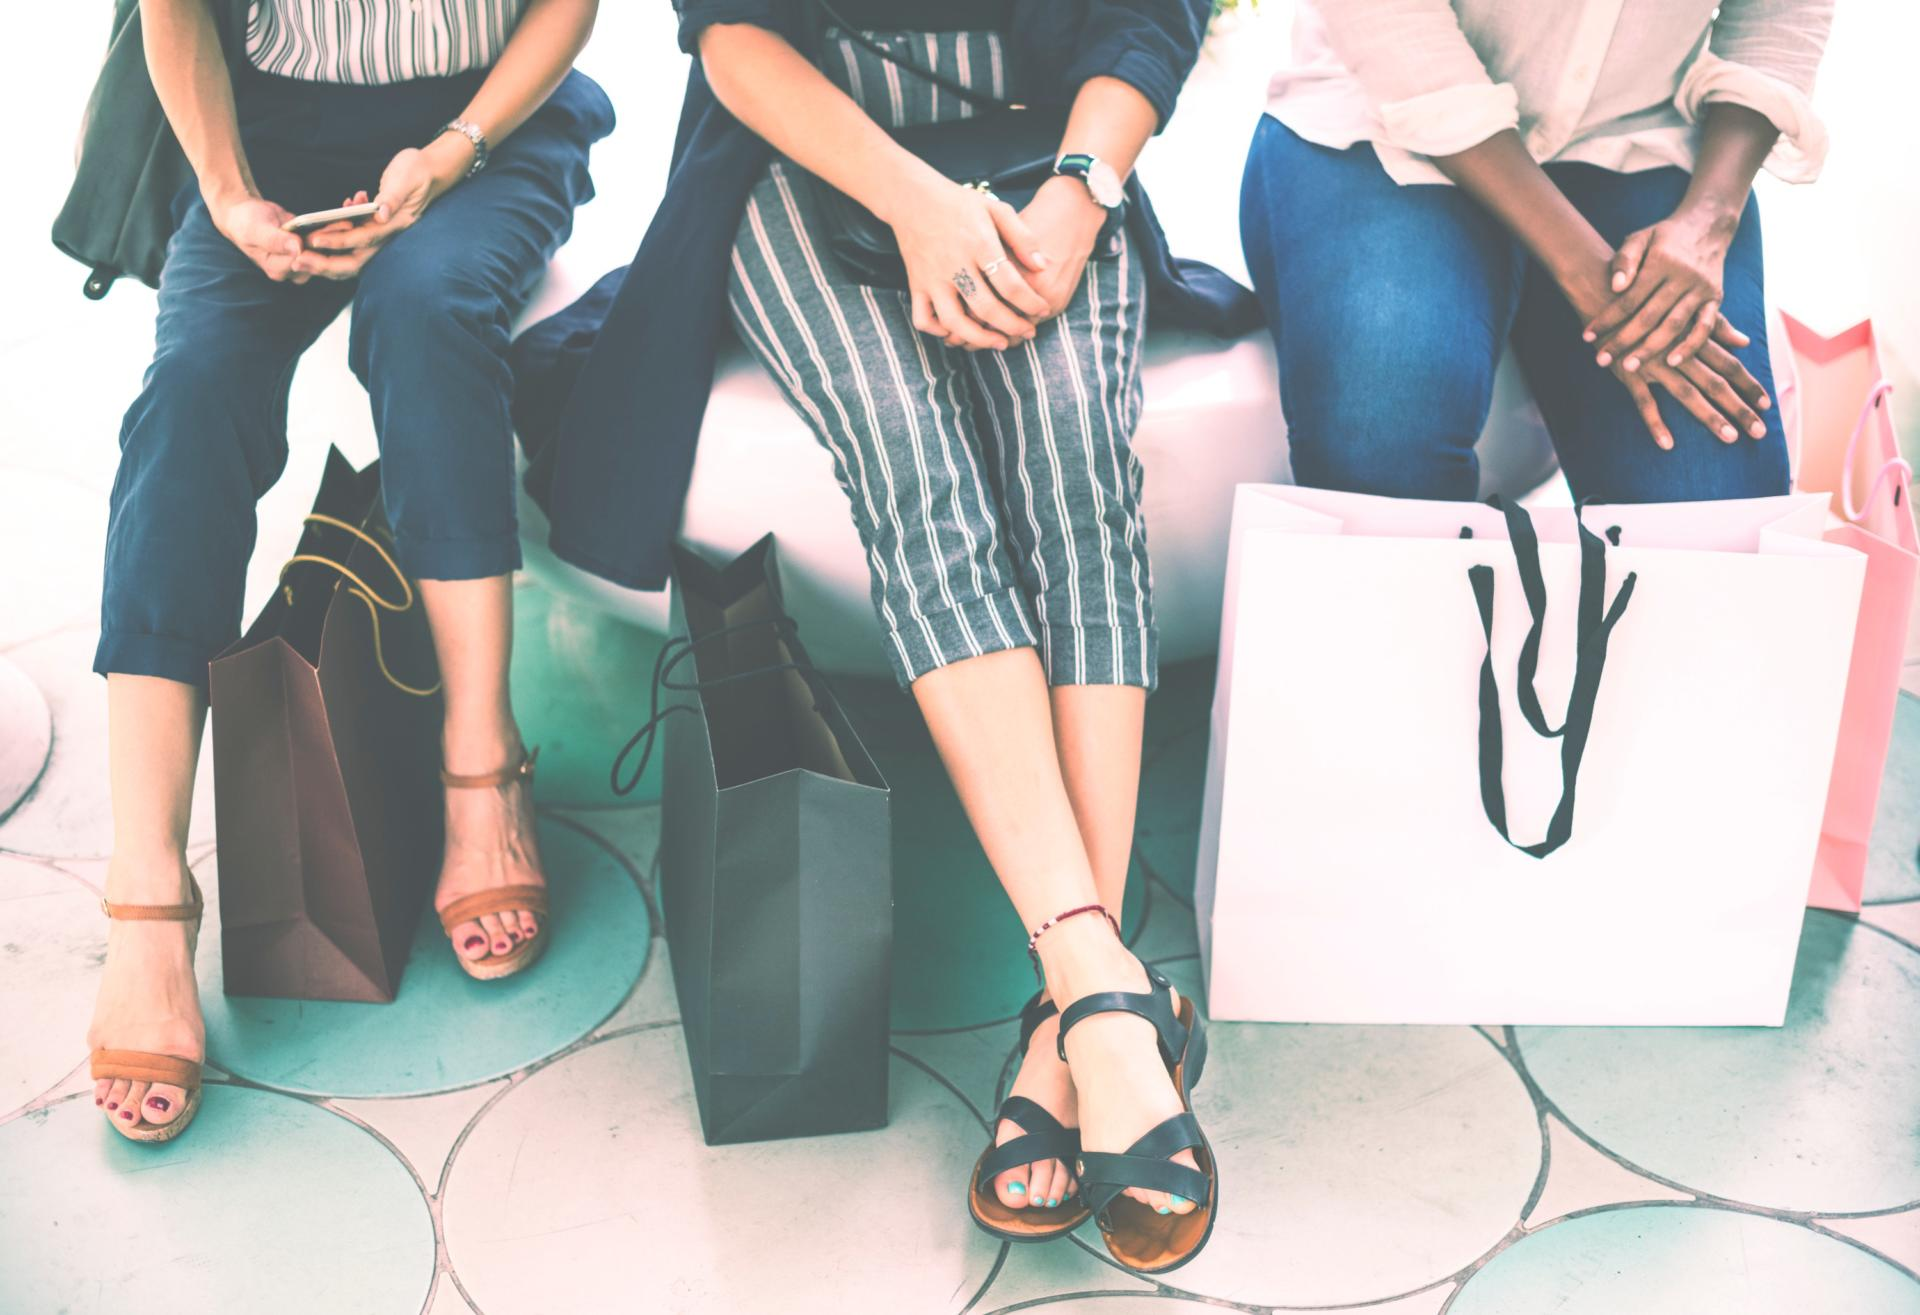 Impulse spending and shopping – check your temperament - Rachel Nicole UK Blogger